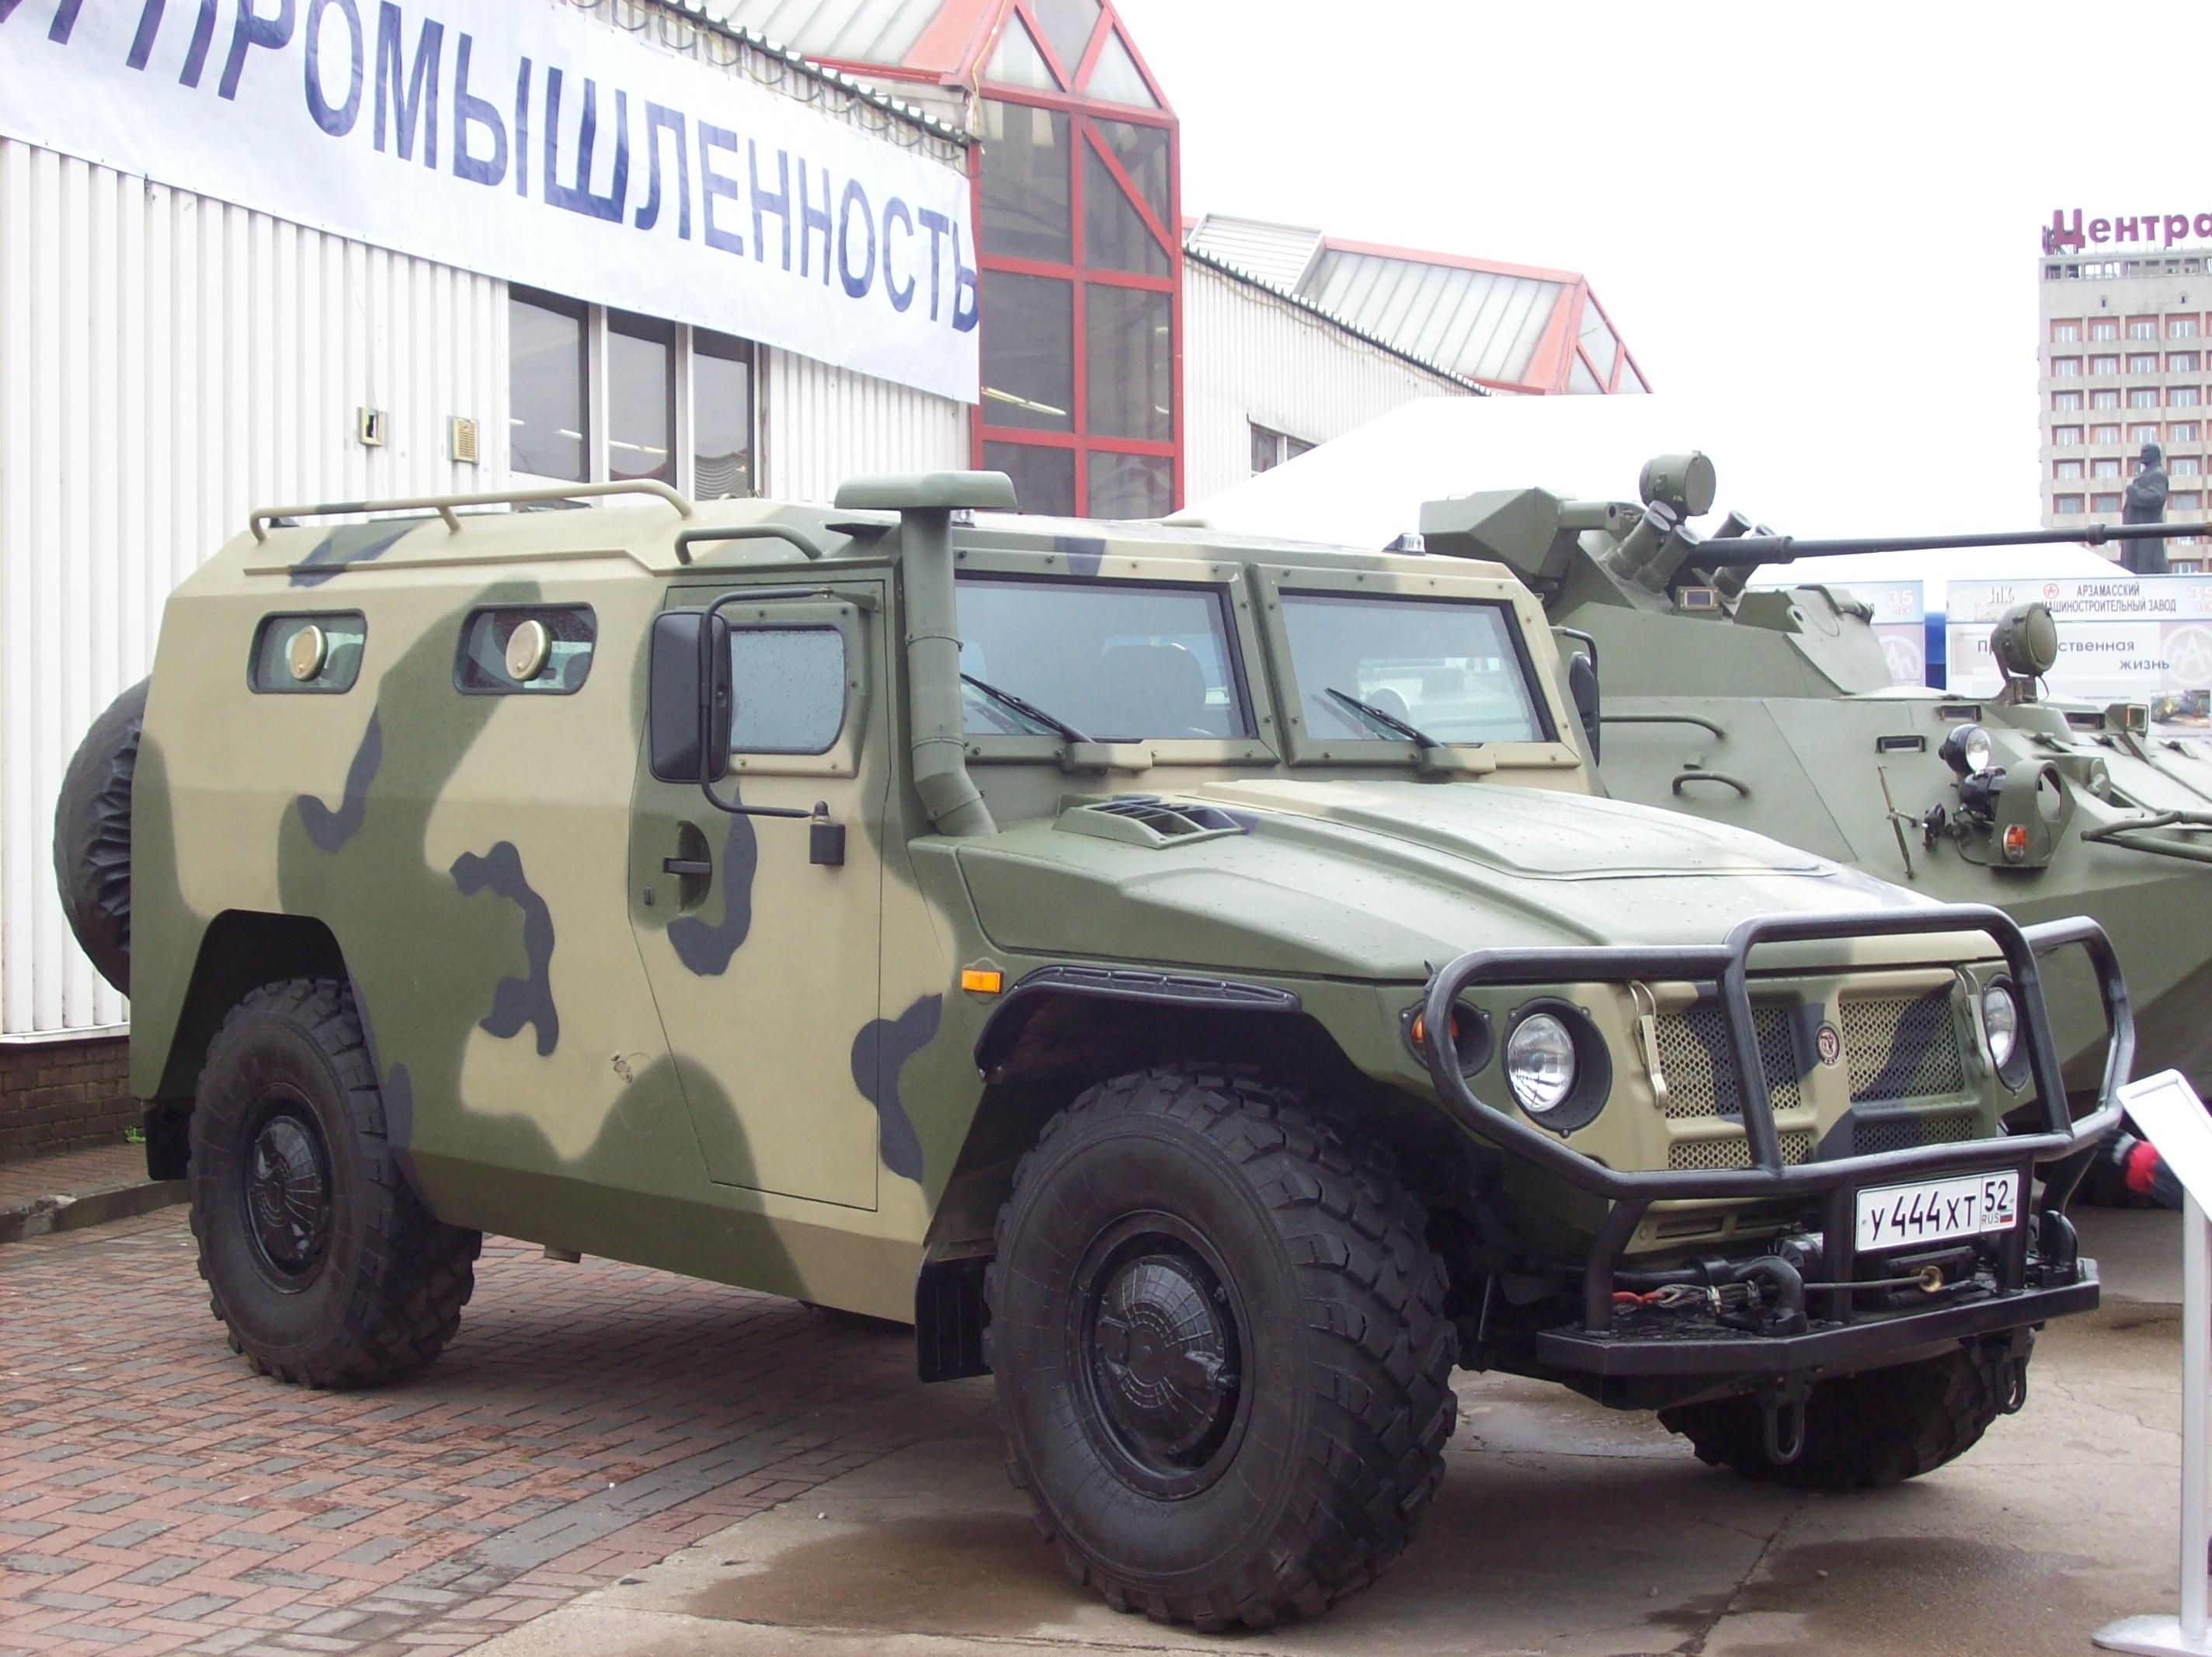 File:A police car Tiger.JPG - Wikimedia Commons